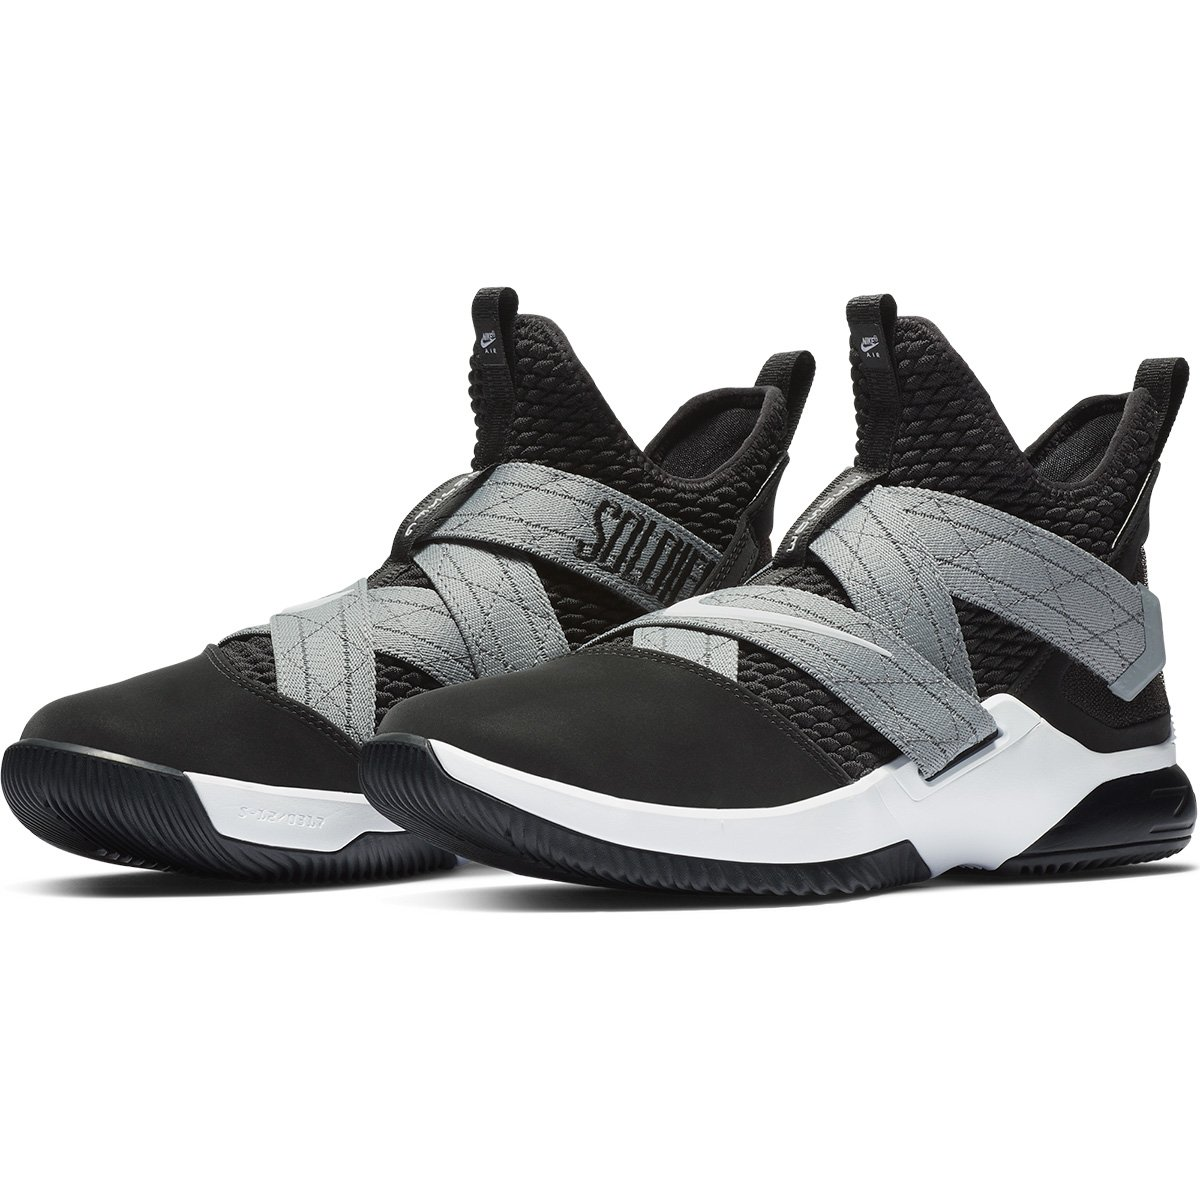 newest c209e 128b9 Tênis Nike Lebron Soldier XII SFG Masculino - Compre Agora